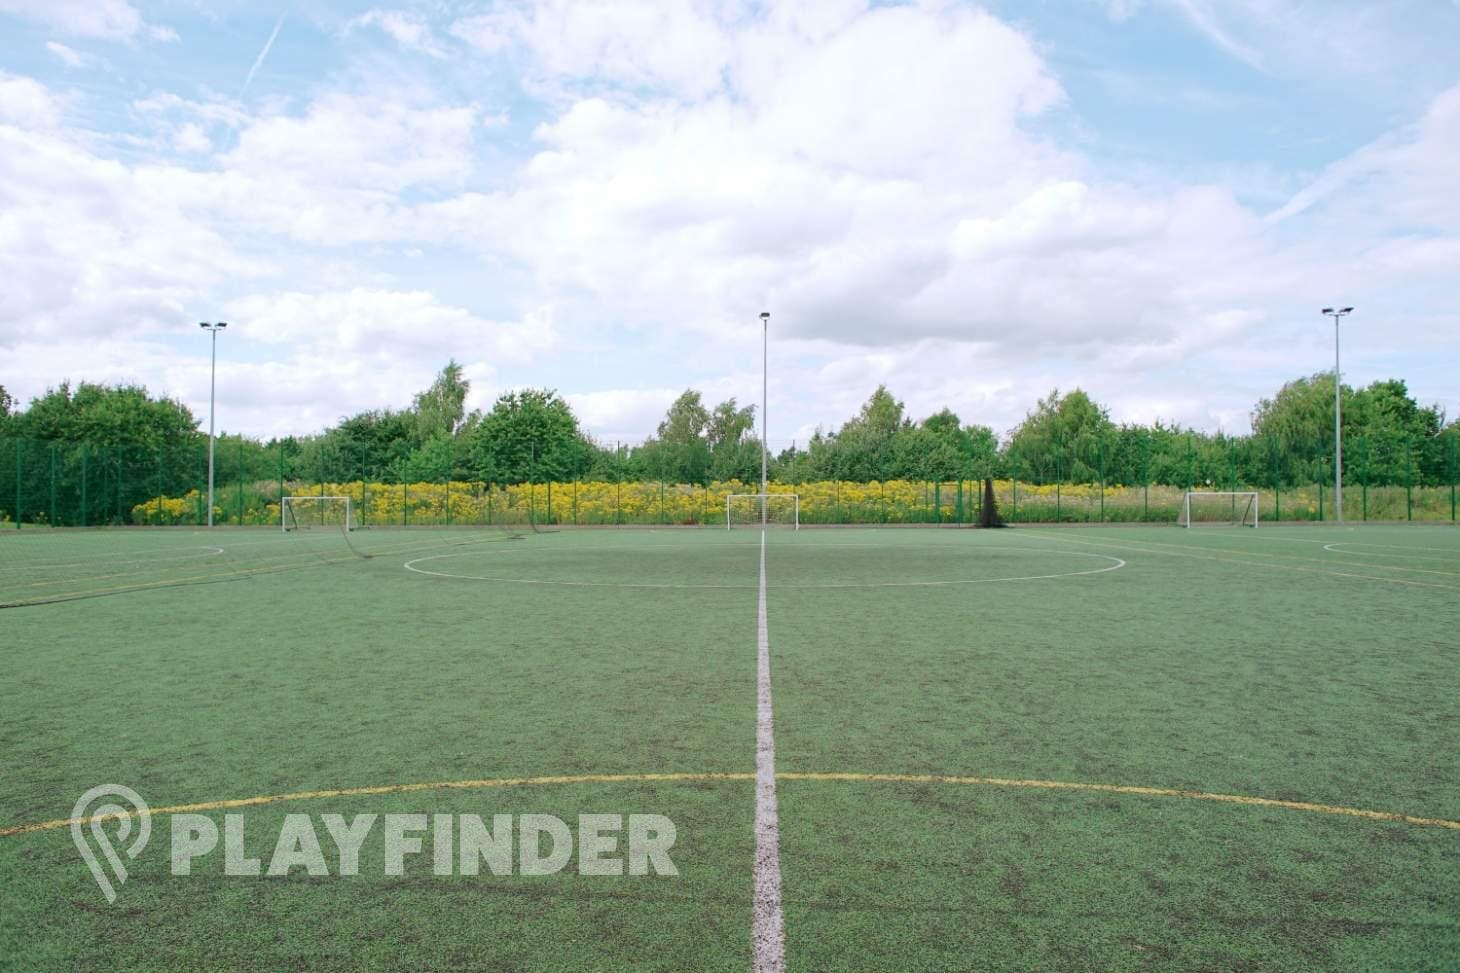 Cox Green Leisure Centre 5 a side | 3G Astroturf football pitch